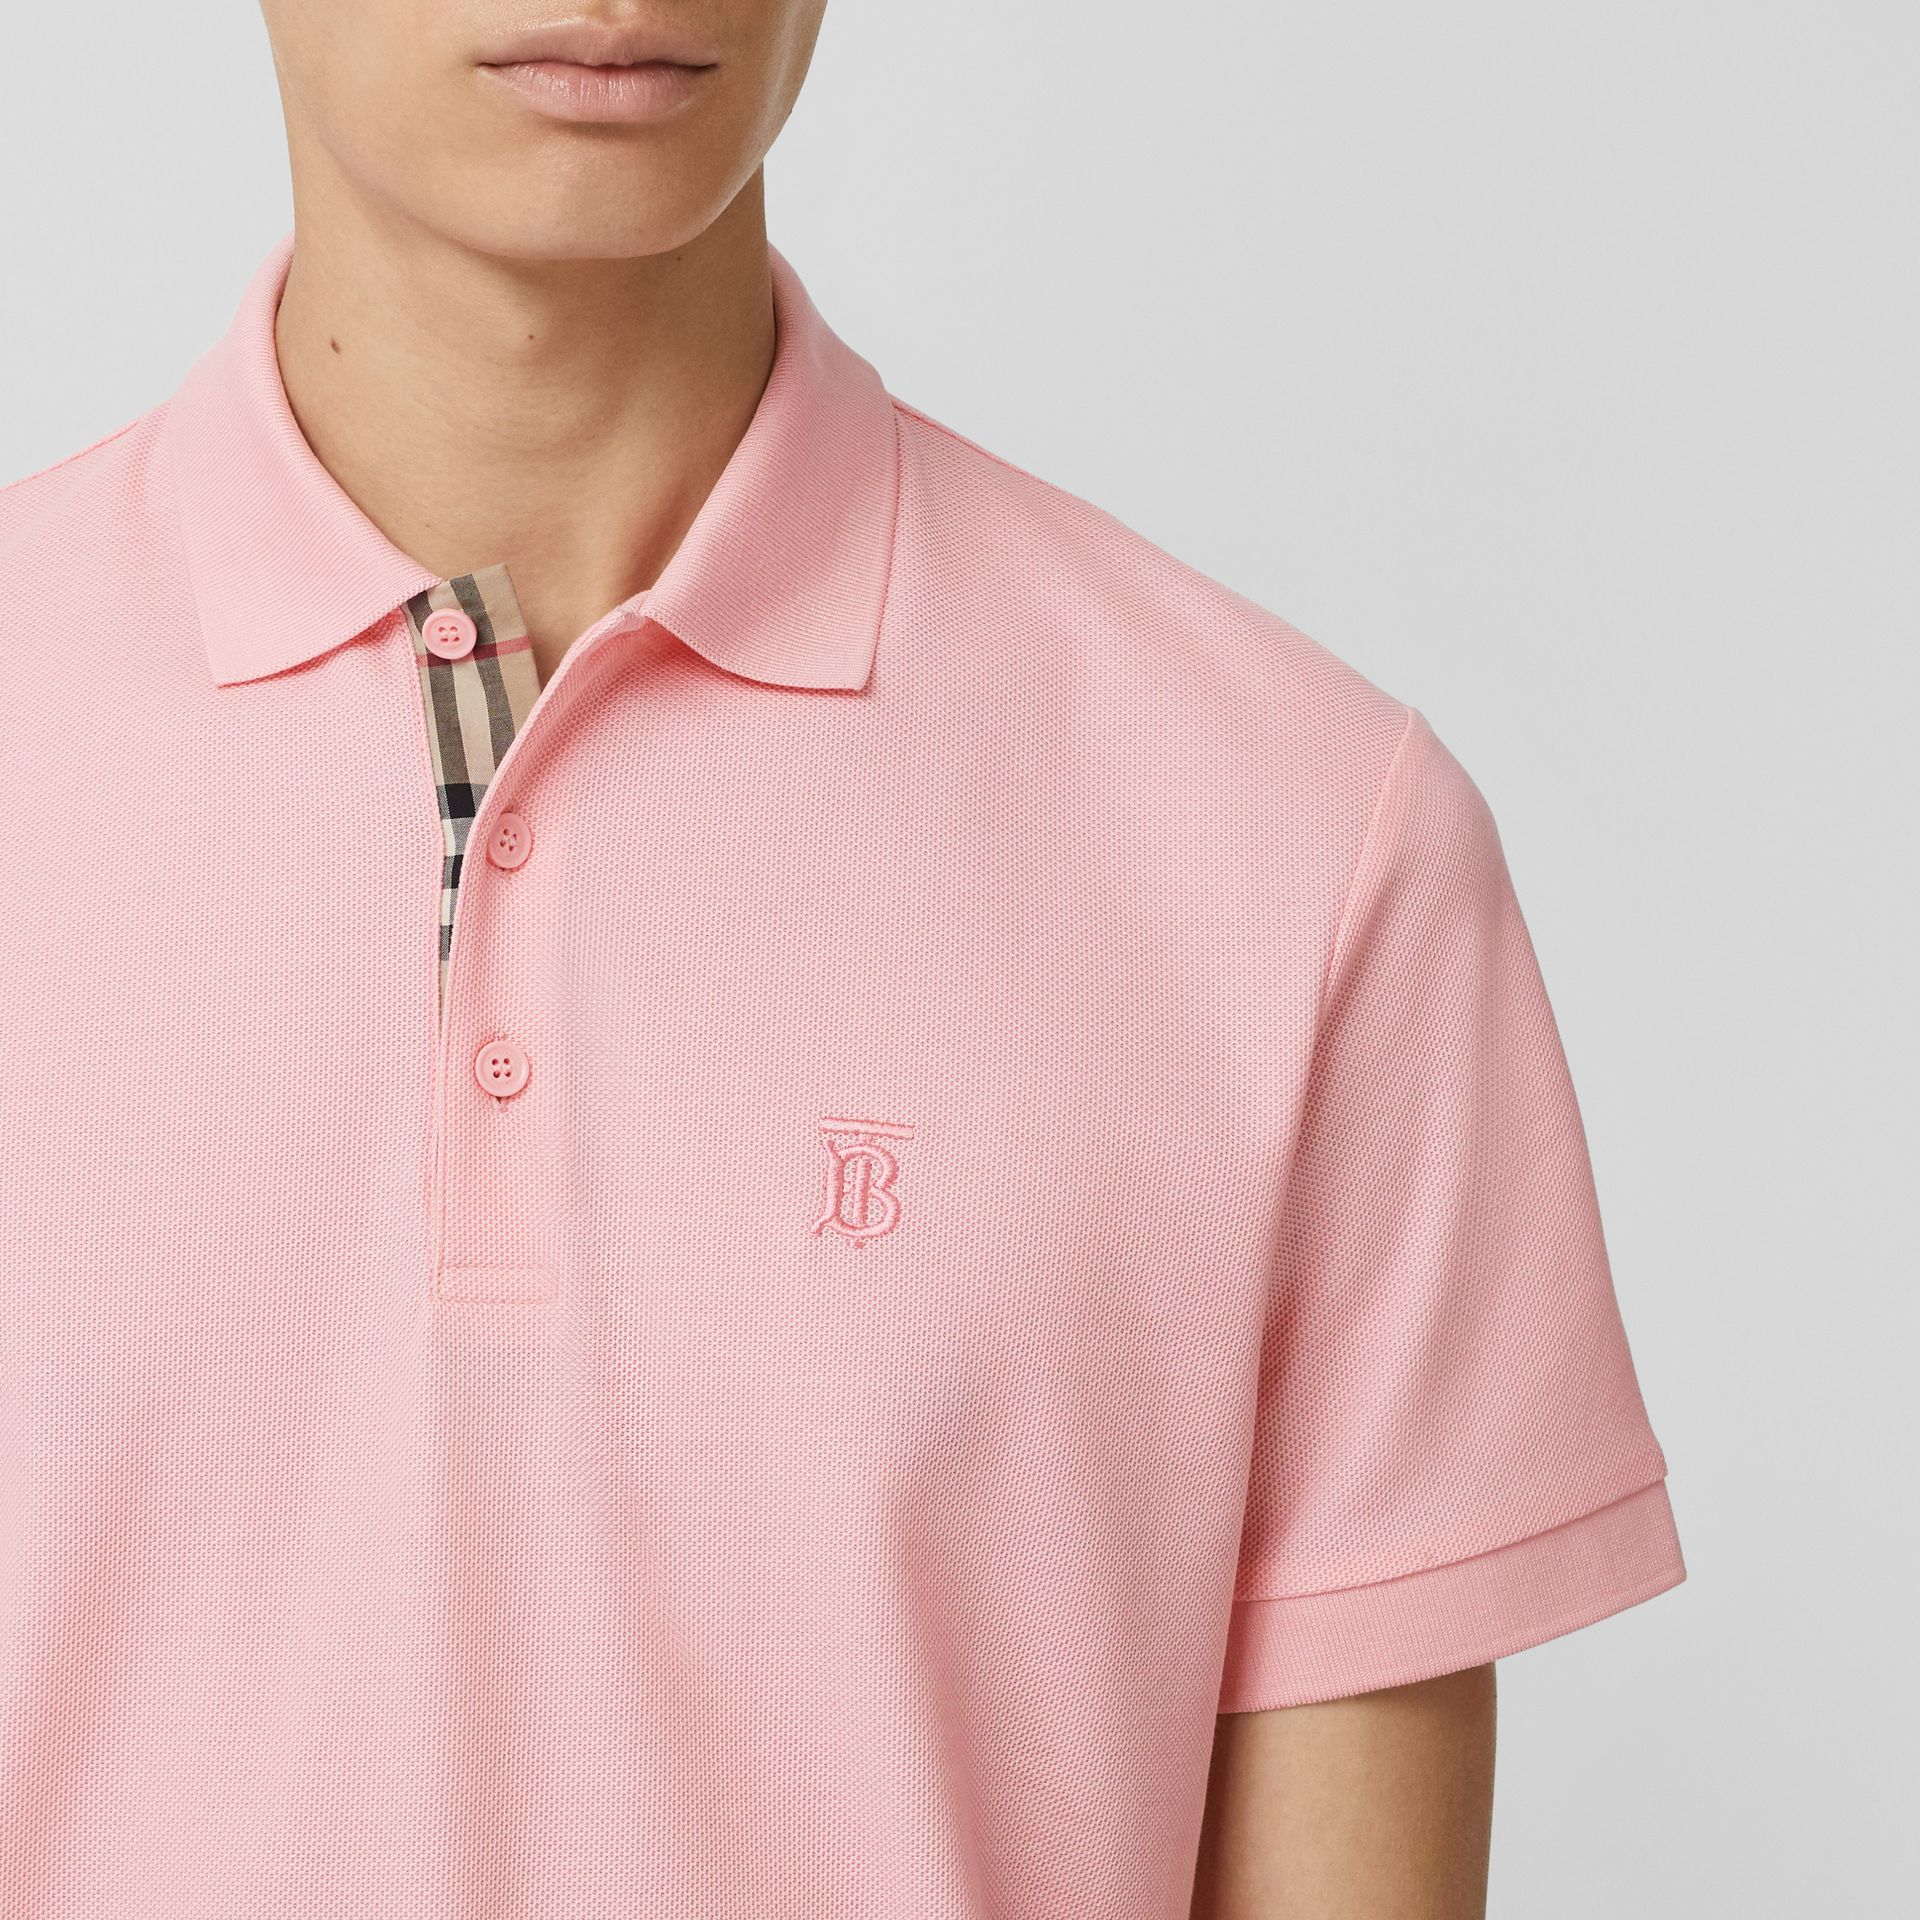 Monogram Motif Cotton Piqué Polo Shirt in Candy Pink - Men | Burberry - gallery image 1